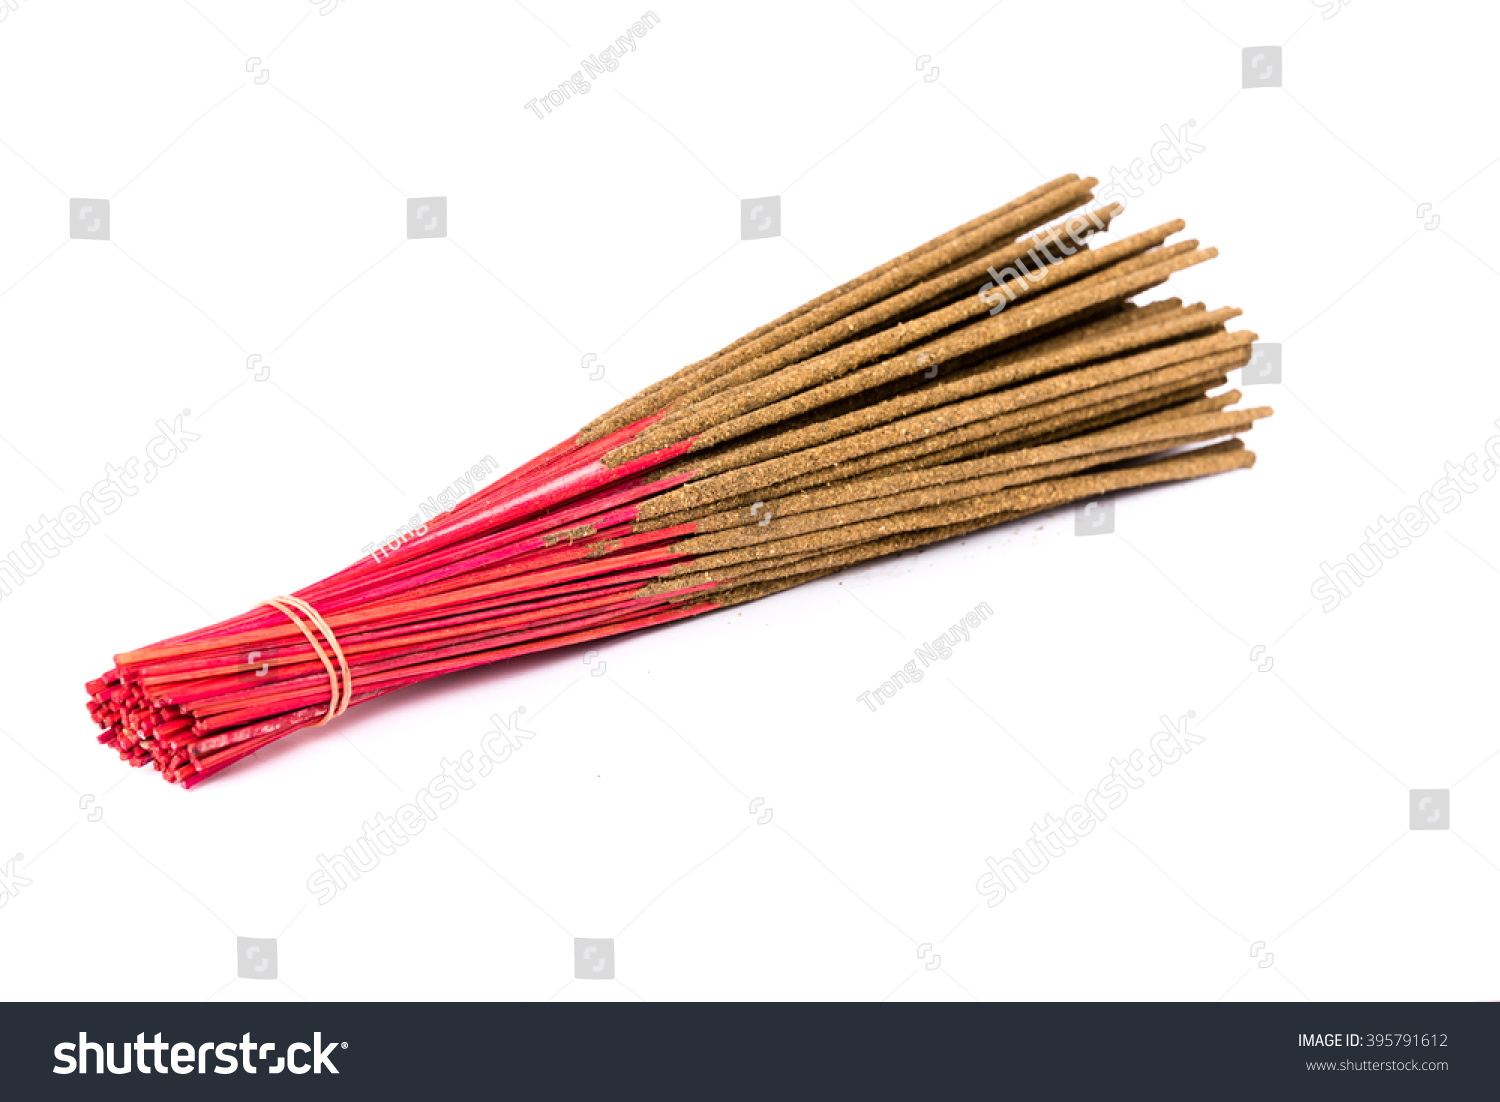 Close-up a bunch of incense sticks isolated on white Incense use in religious ritual popular in Vietnam.Its burned to intend as a sacrificial offering to various deity or to serve as an aid in prayer